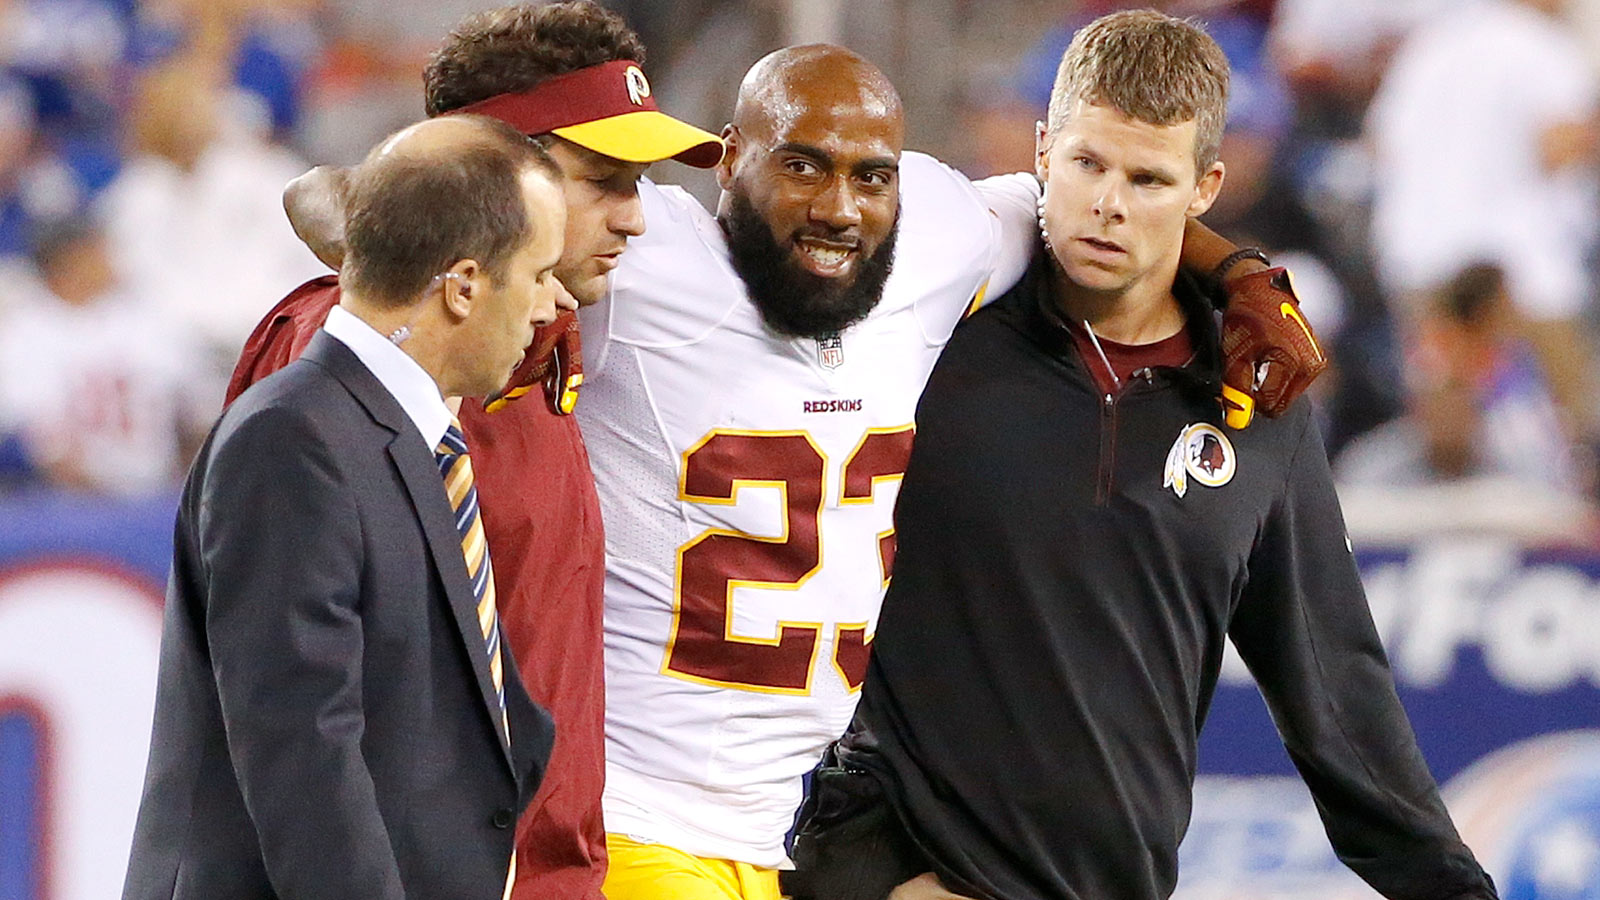 Redskins' Hall out 3-4 weeks with sprained toe